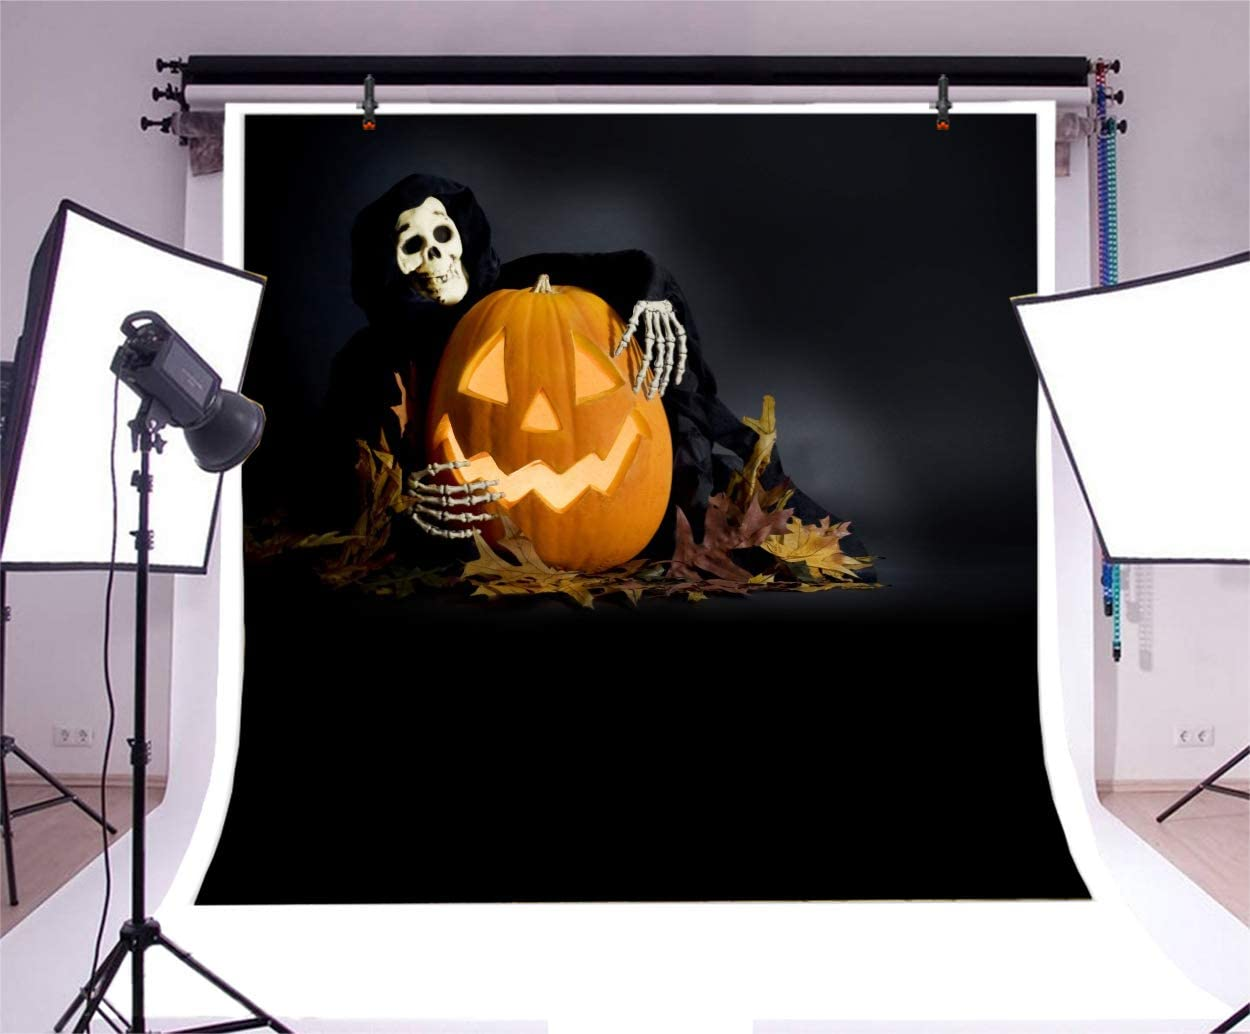 Yeele Halloween Backdrop for Photography Skeleton Holding The Creepy Pumpkin Lamps Background Kids Adult Artistic Portrait 10x10ft Kid Halloween Party Carnival Photoshoot Prop Photo Booth Wallpaper